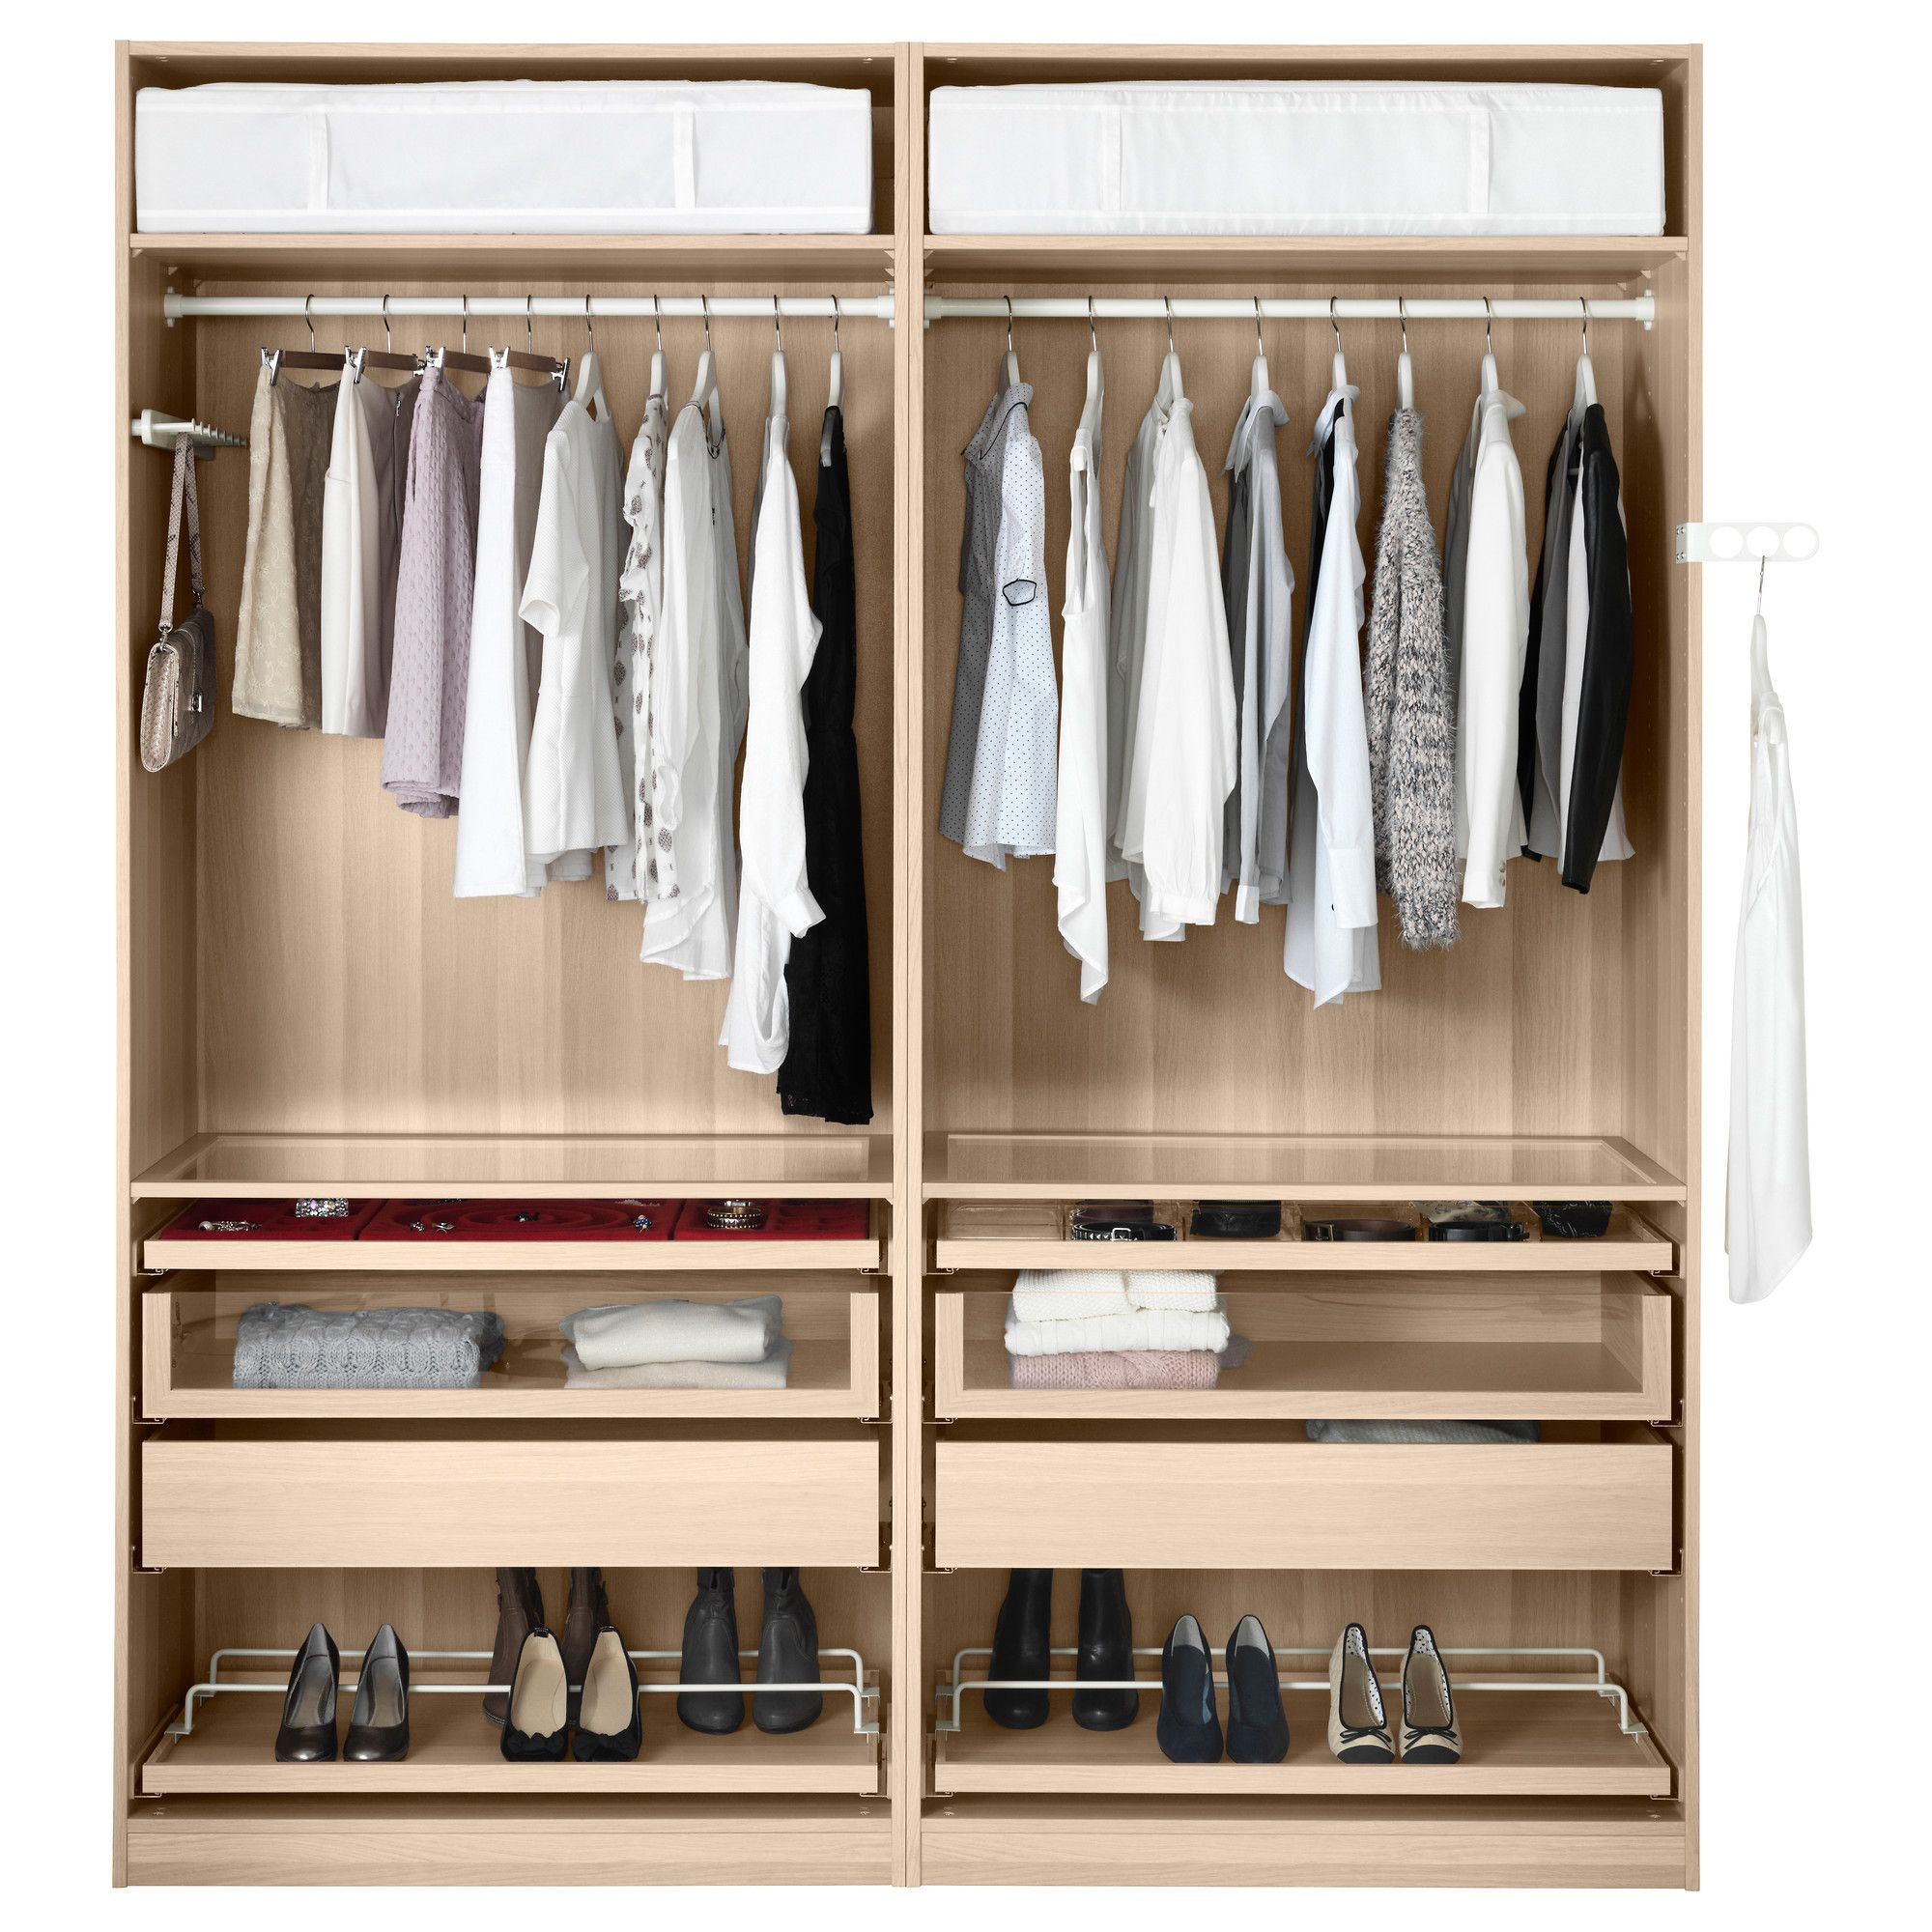 ikea pax closet systems - Google Search | Walk in robe design ...